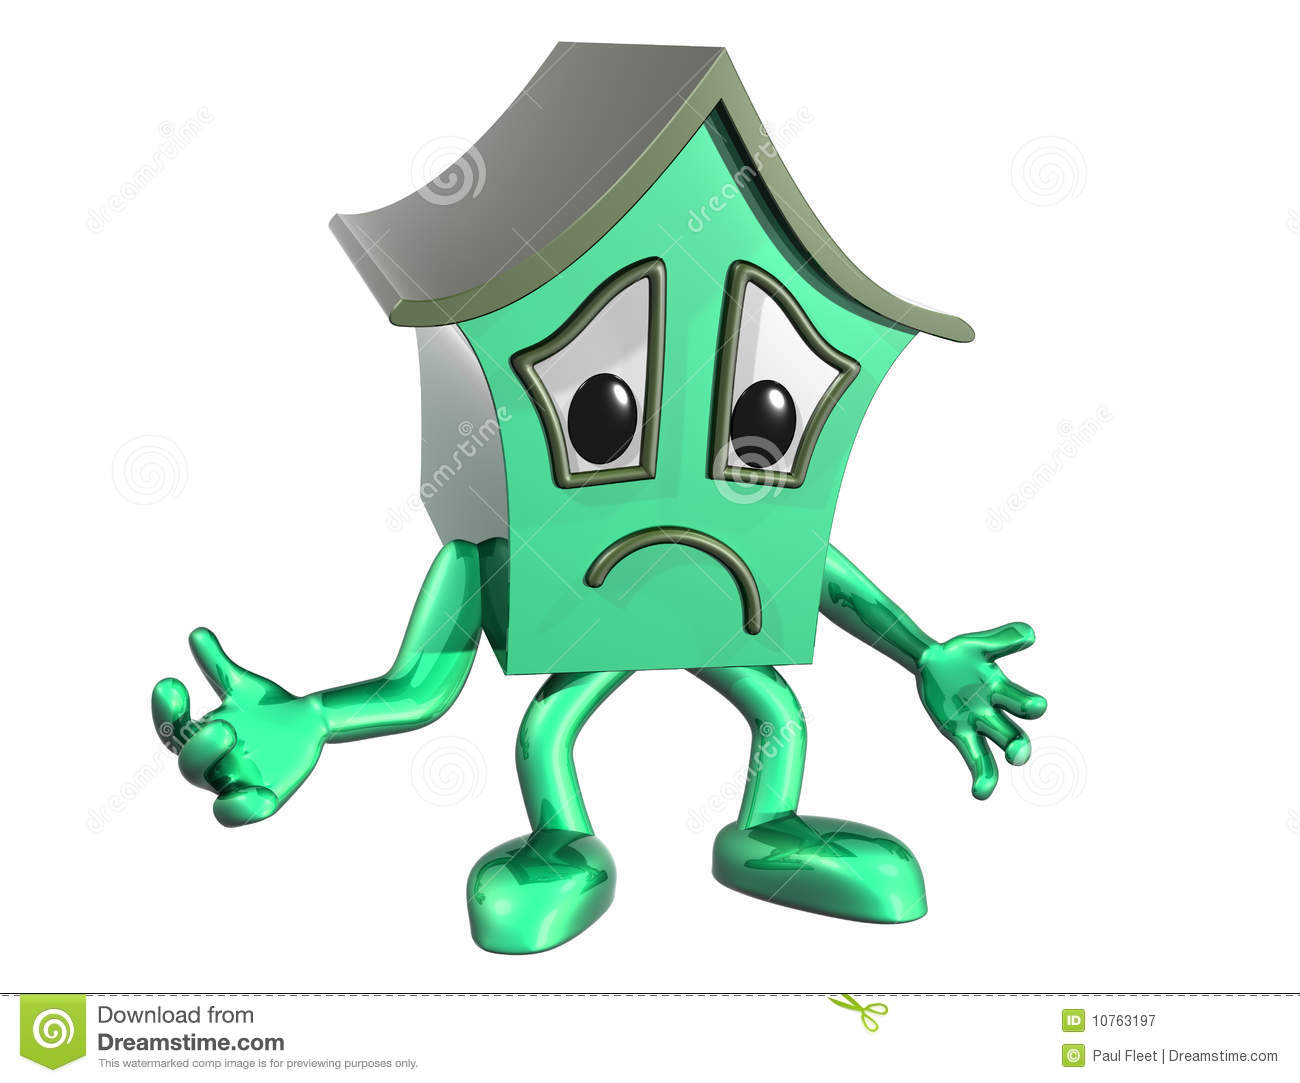 Sad House Royalty Free Stock Photography - Image: 10763197